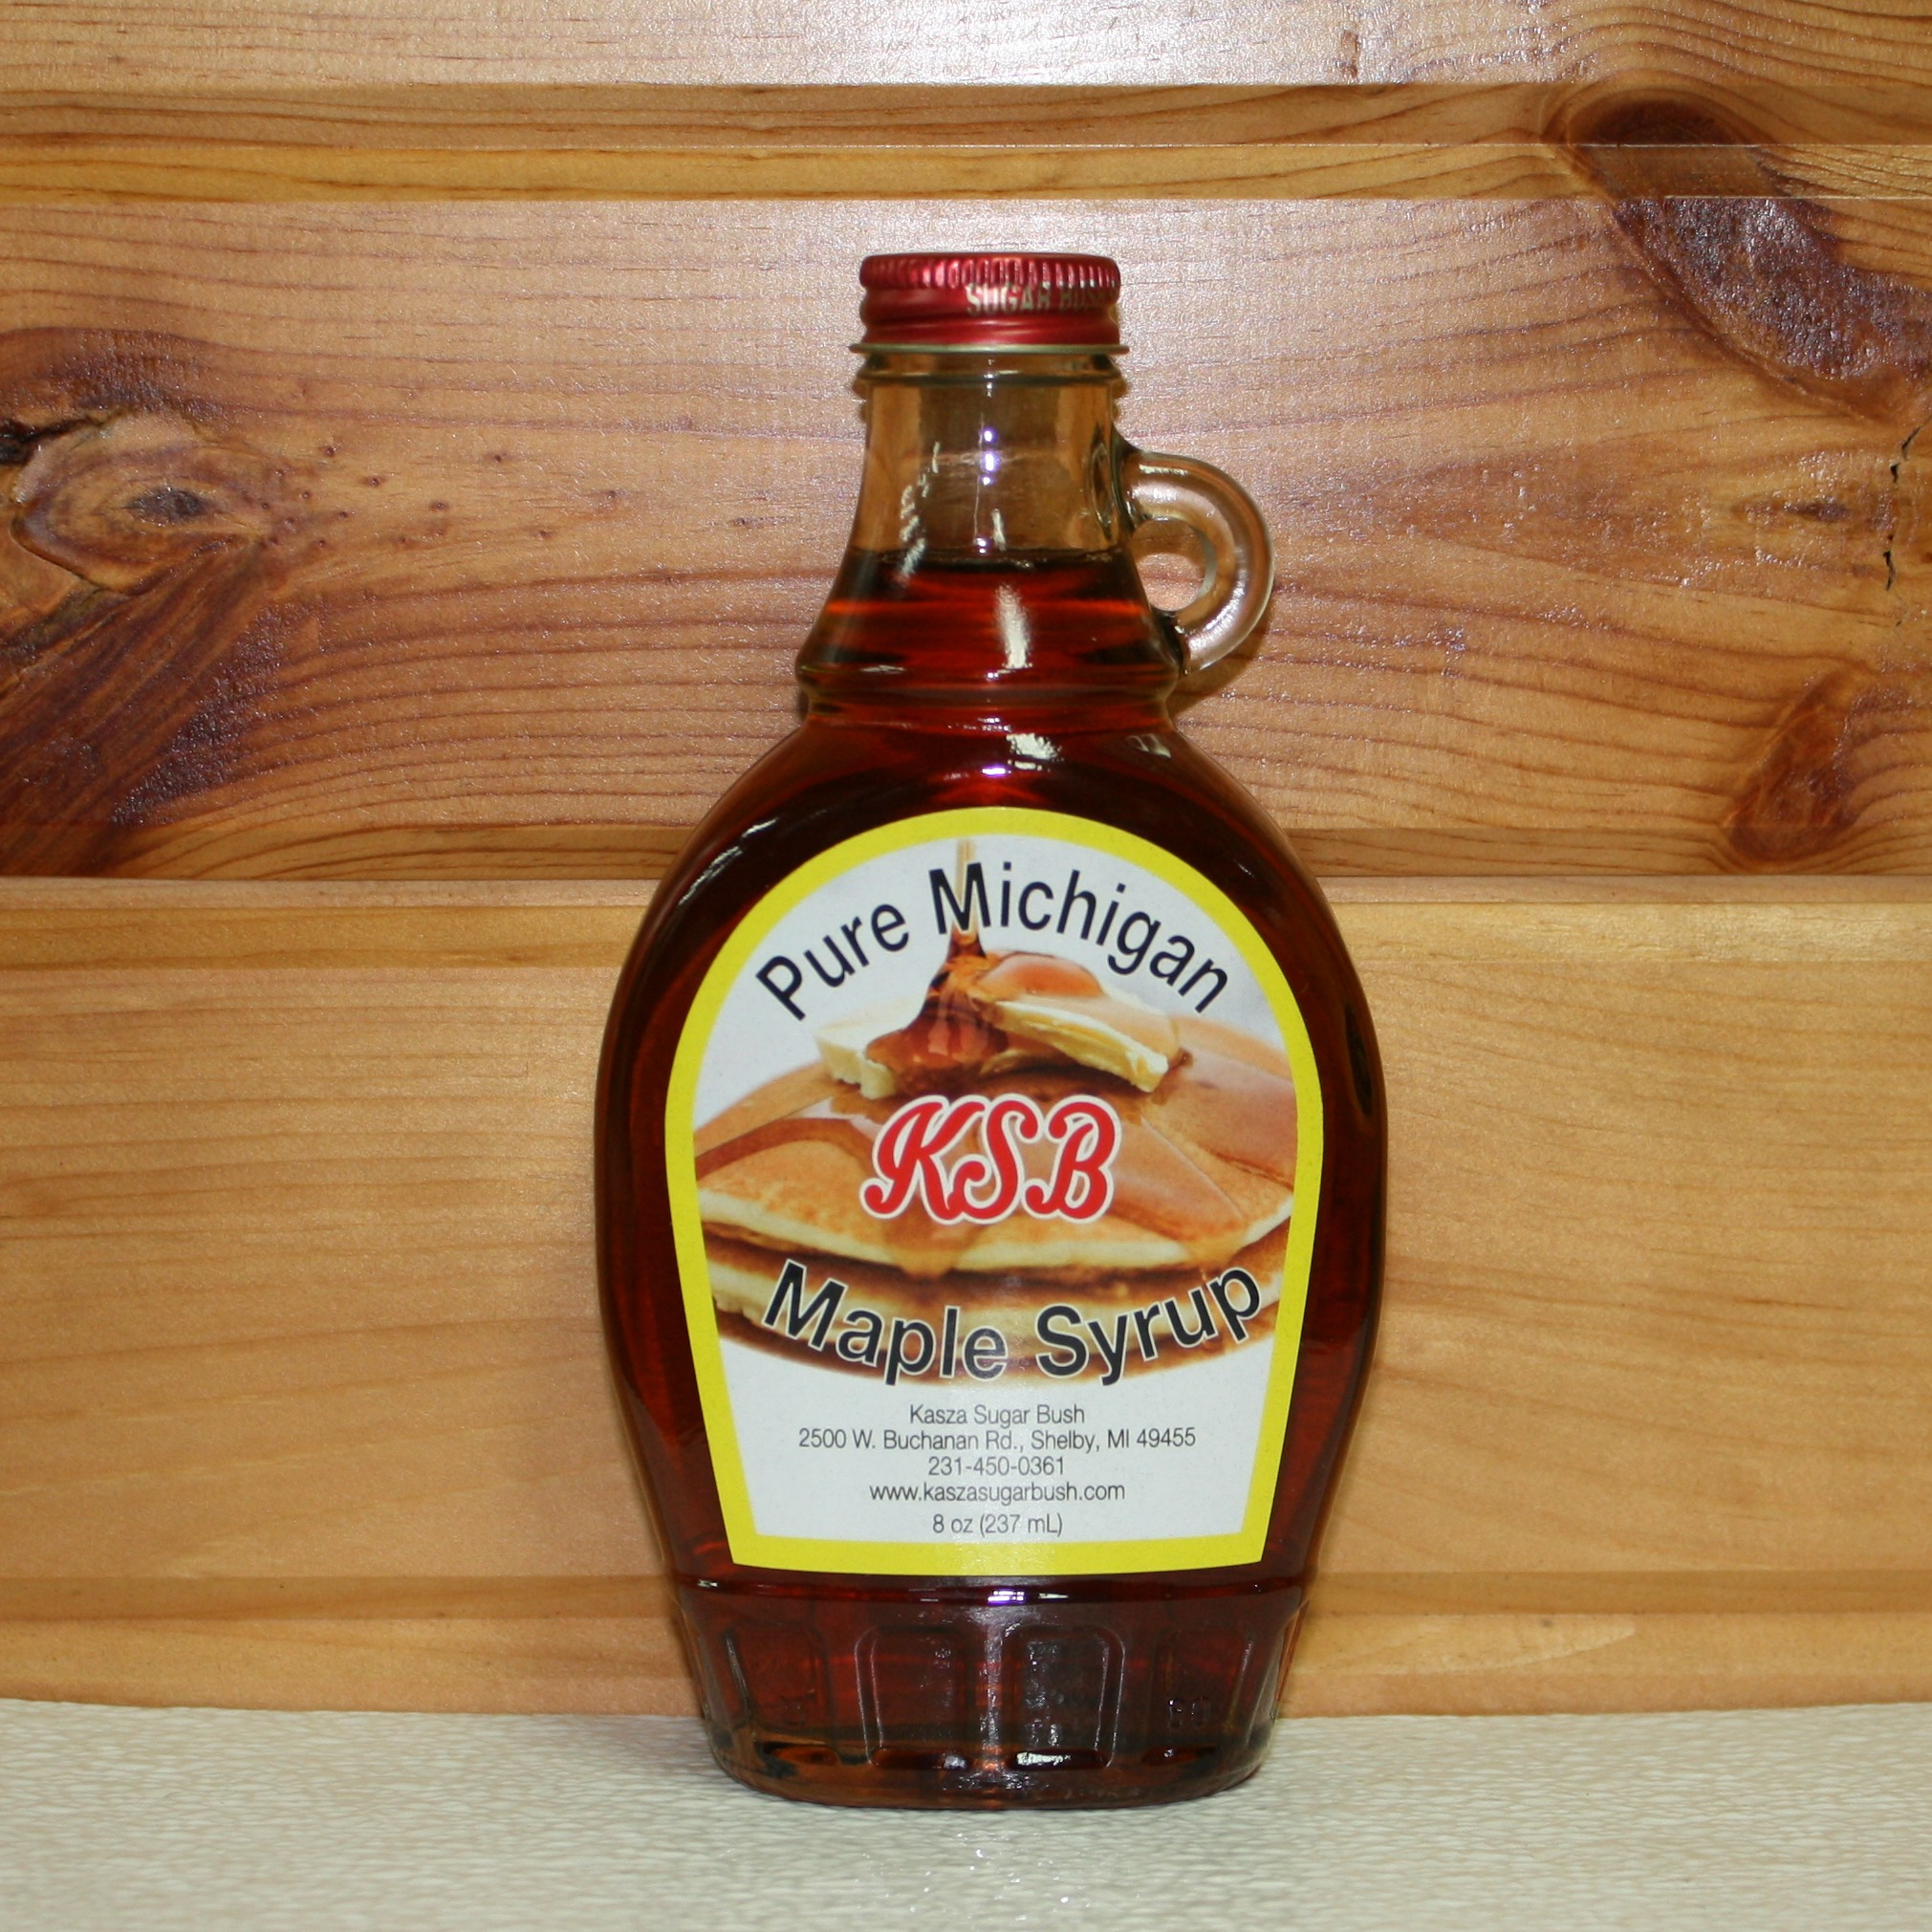 8 oz. Glass Bottle of Pure Maple Syrup